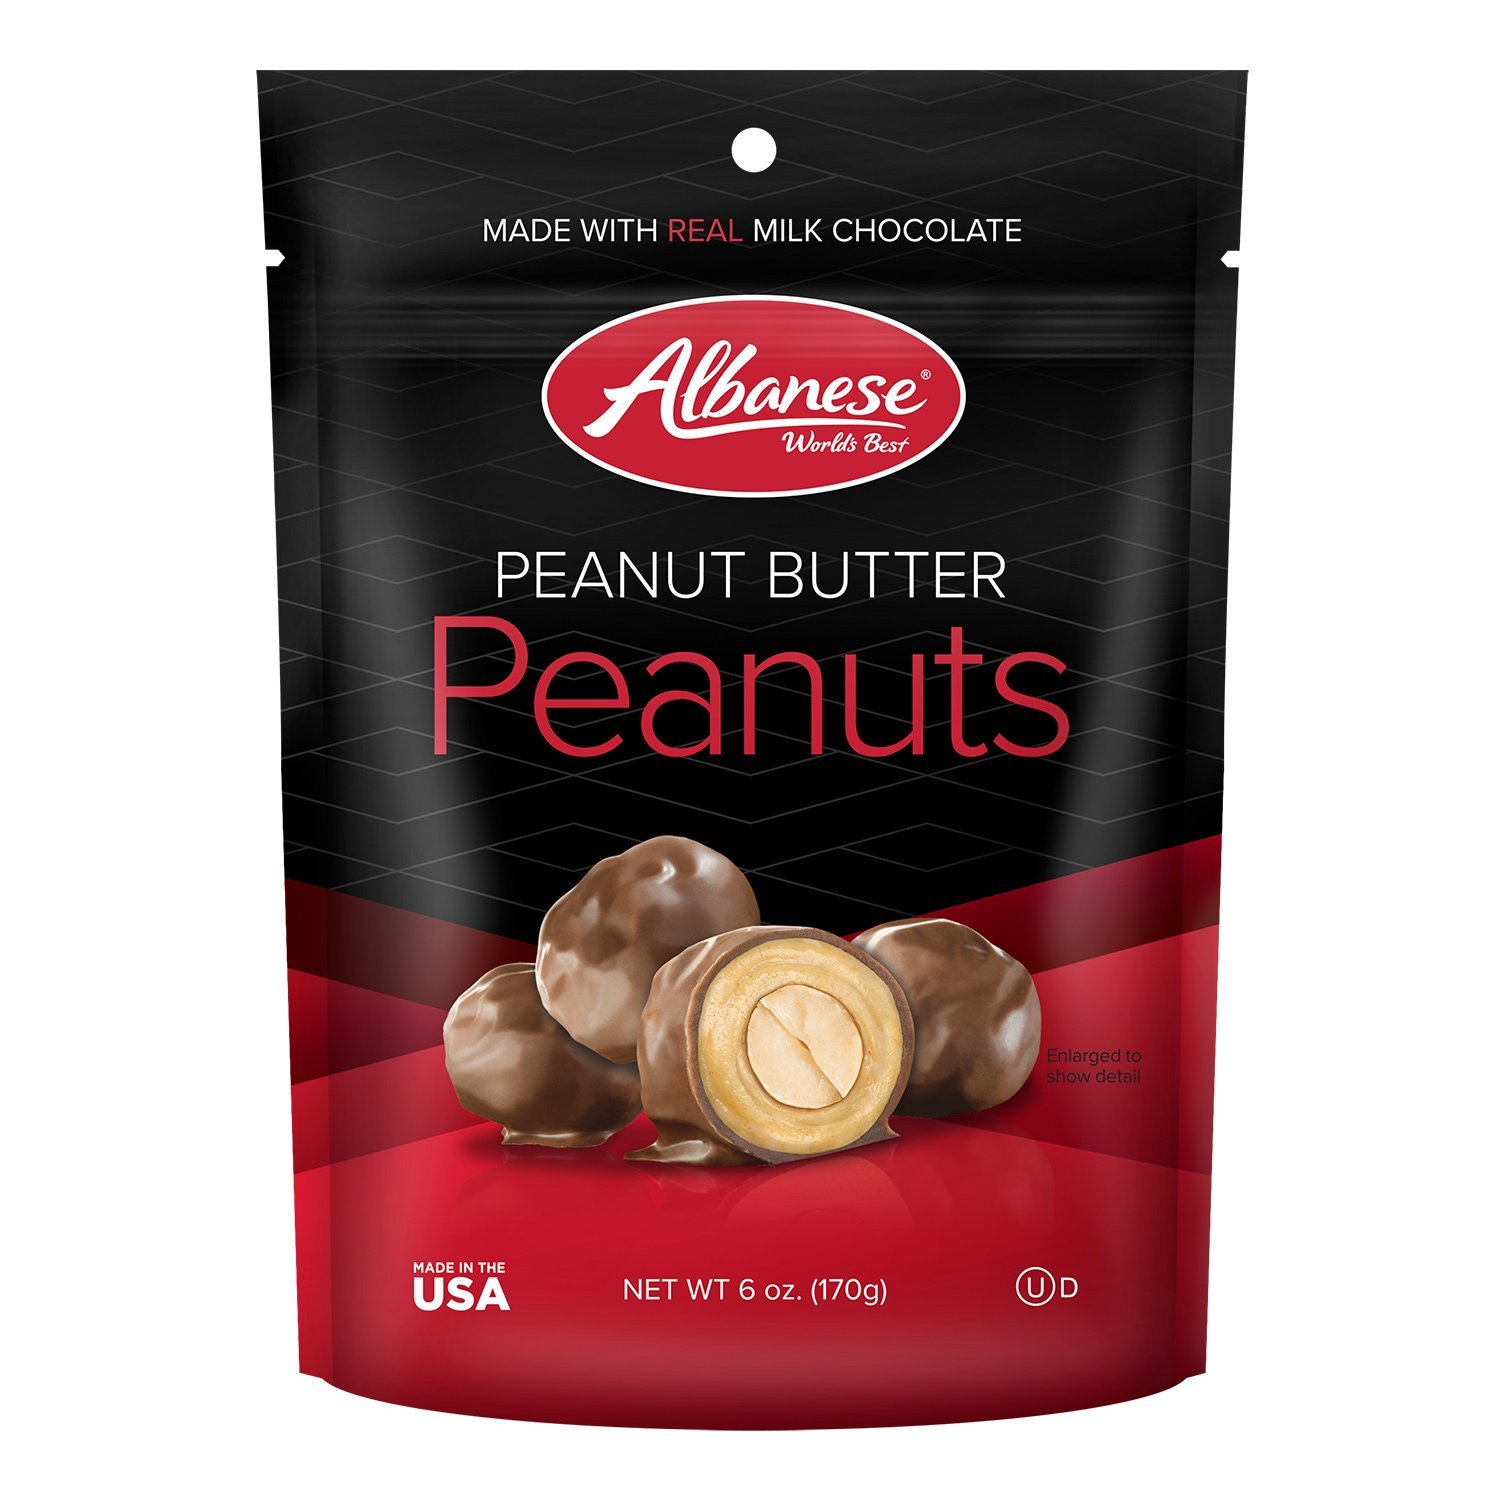 Albanese Milk Chocolate Peanut Butter Peanuts, 6.0 oz. Gusseted Peg bag (6 count) by Albanese